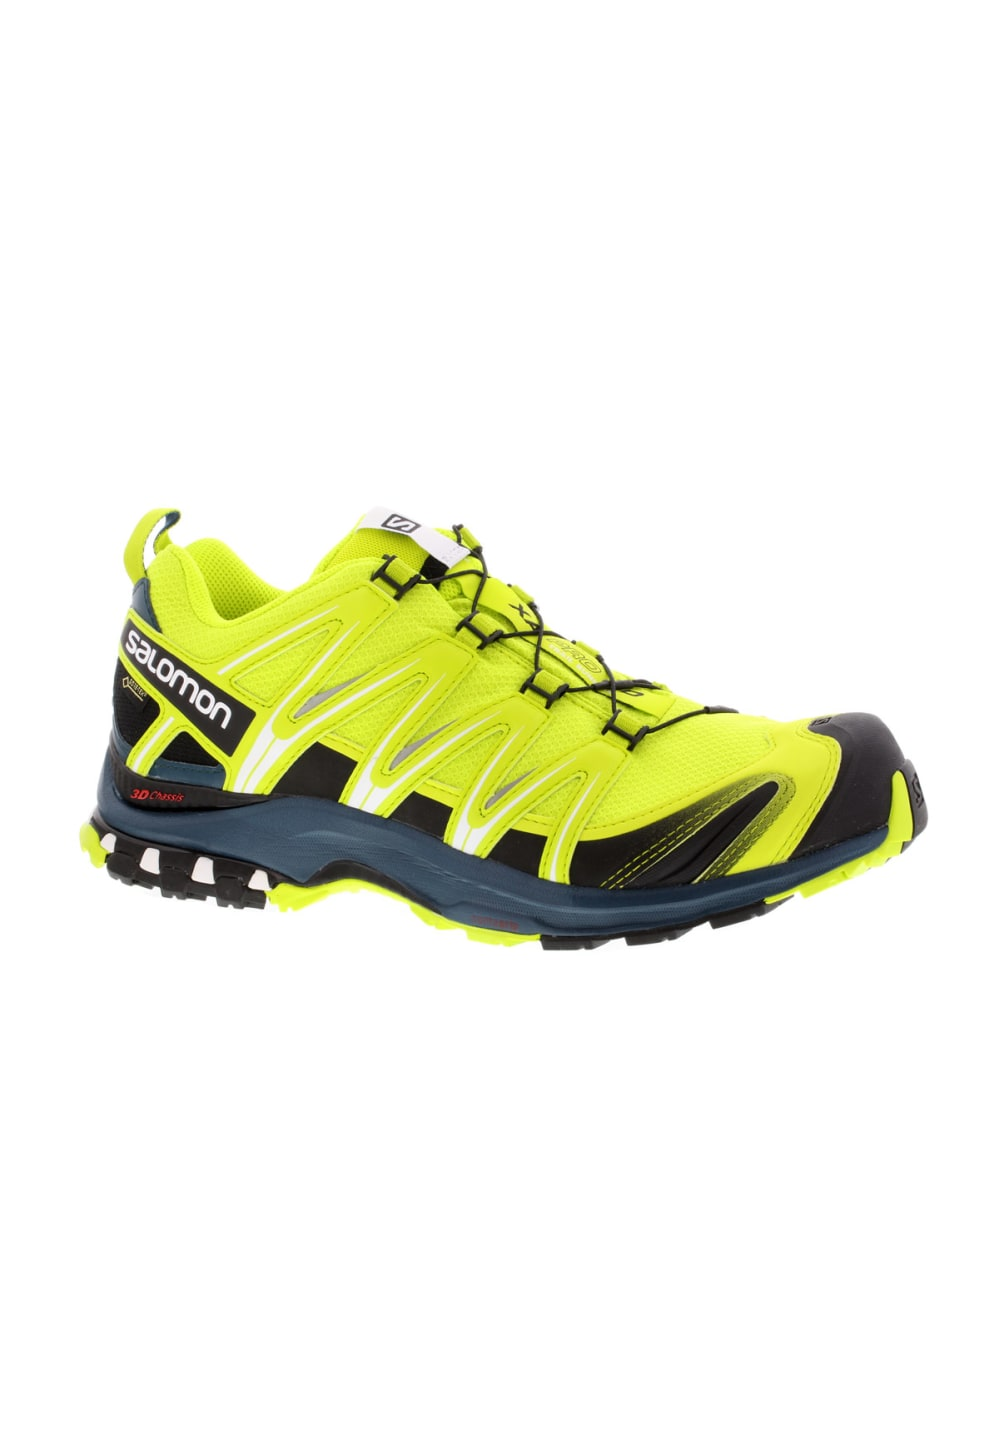 wholesale dealer 7c11d 0eb2f Next. Salomon. XA Pro 3D GTX - Running shoes ...